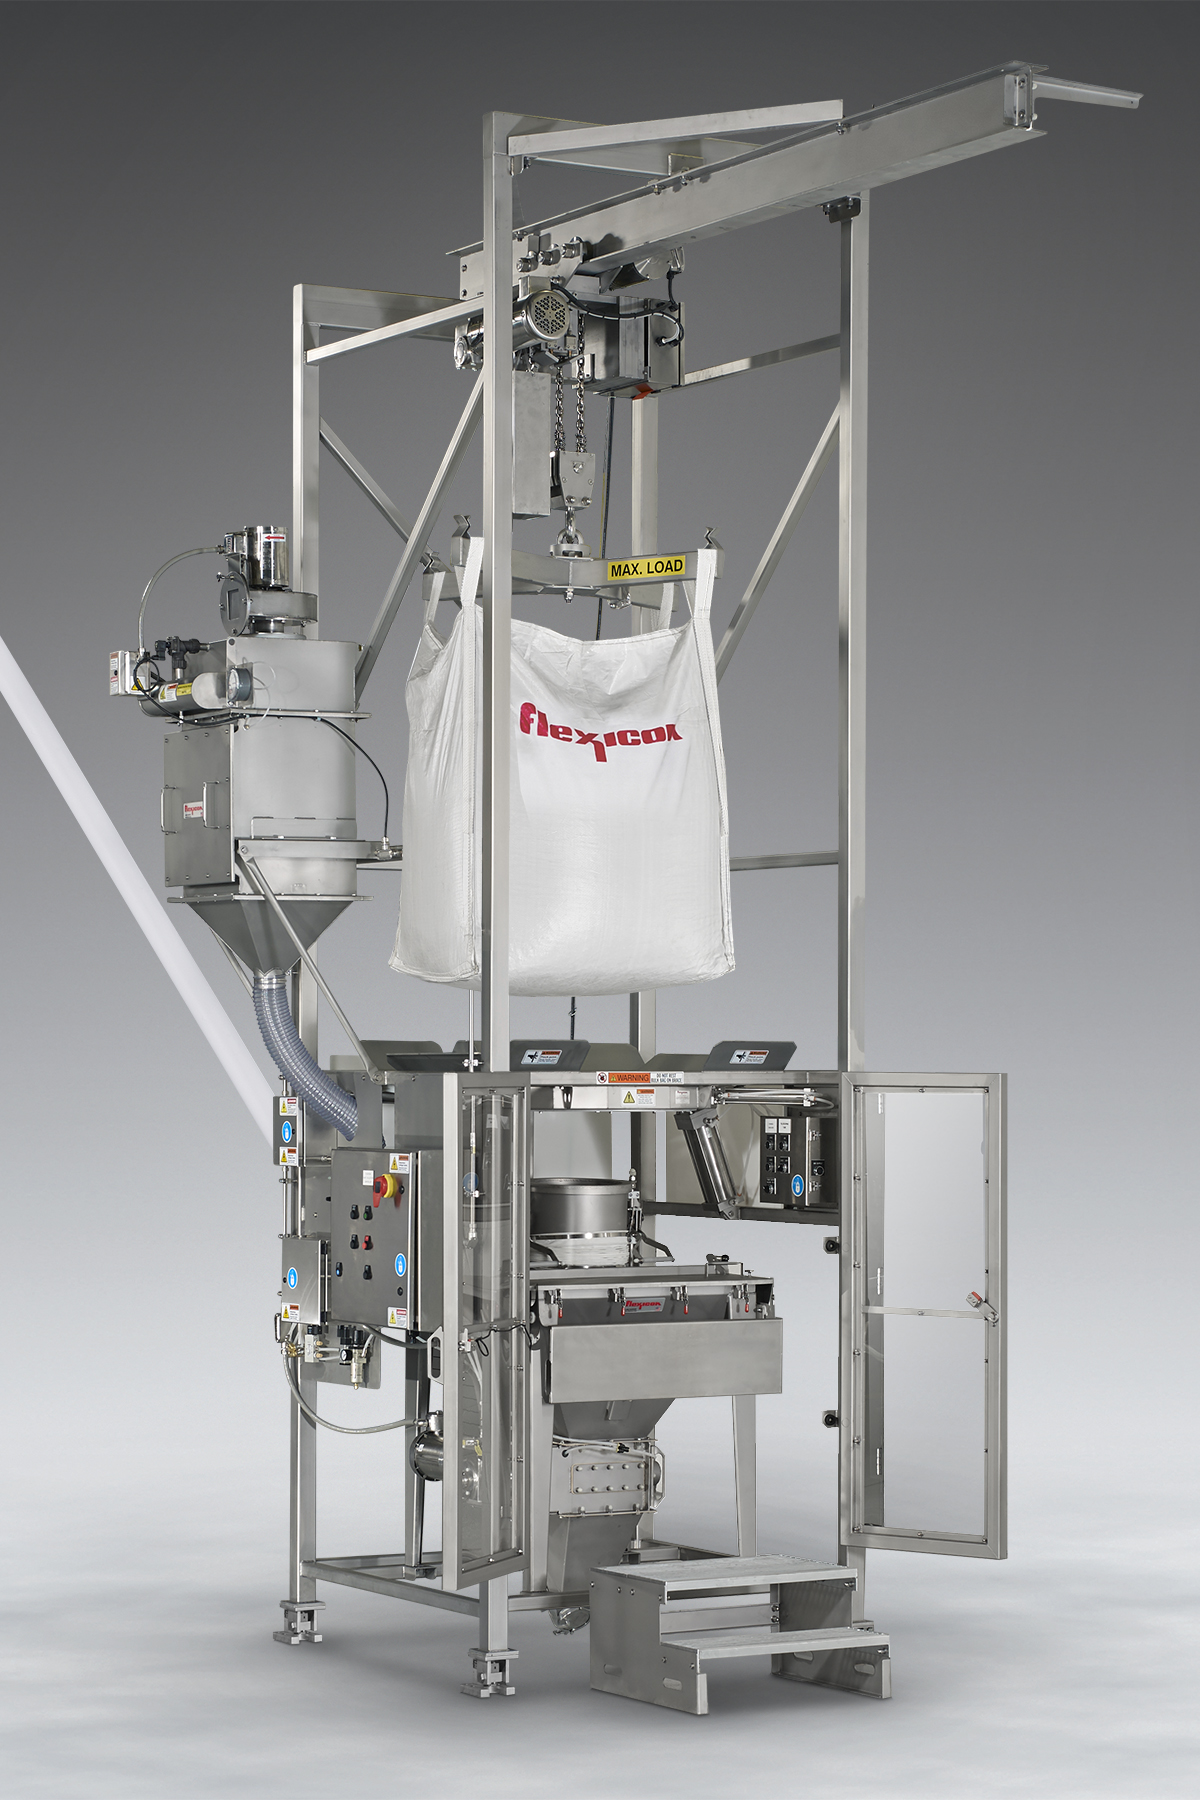 Sanitary Bulk Bag Weigh Batch Unloader by Flexicon